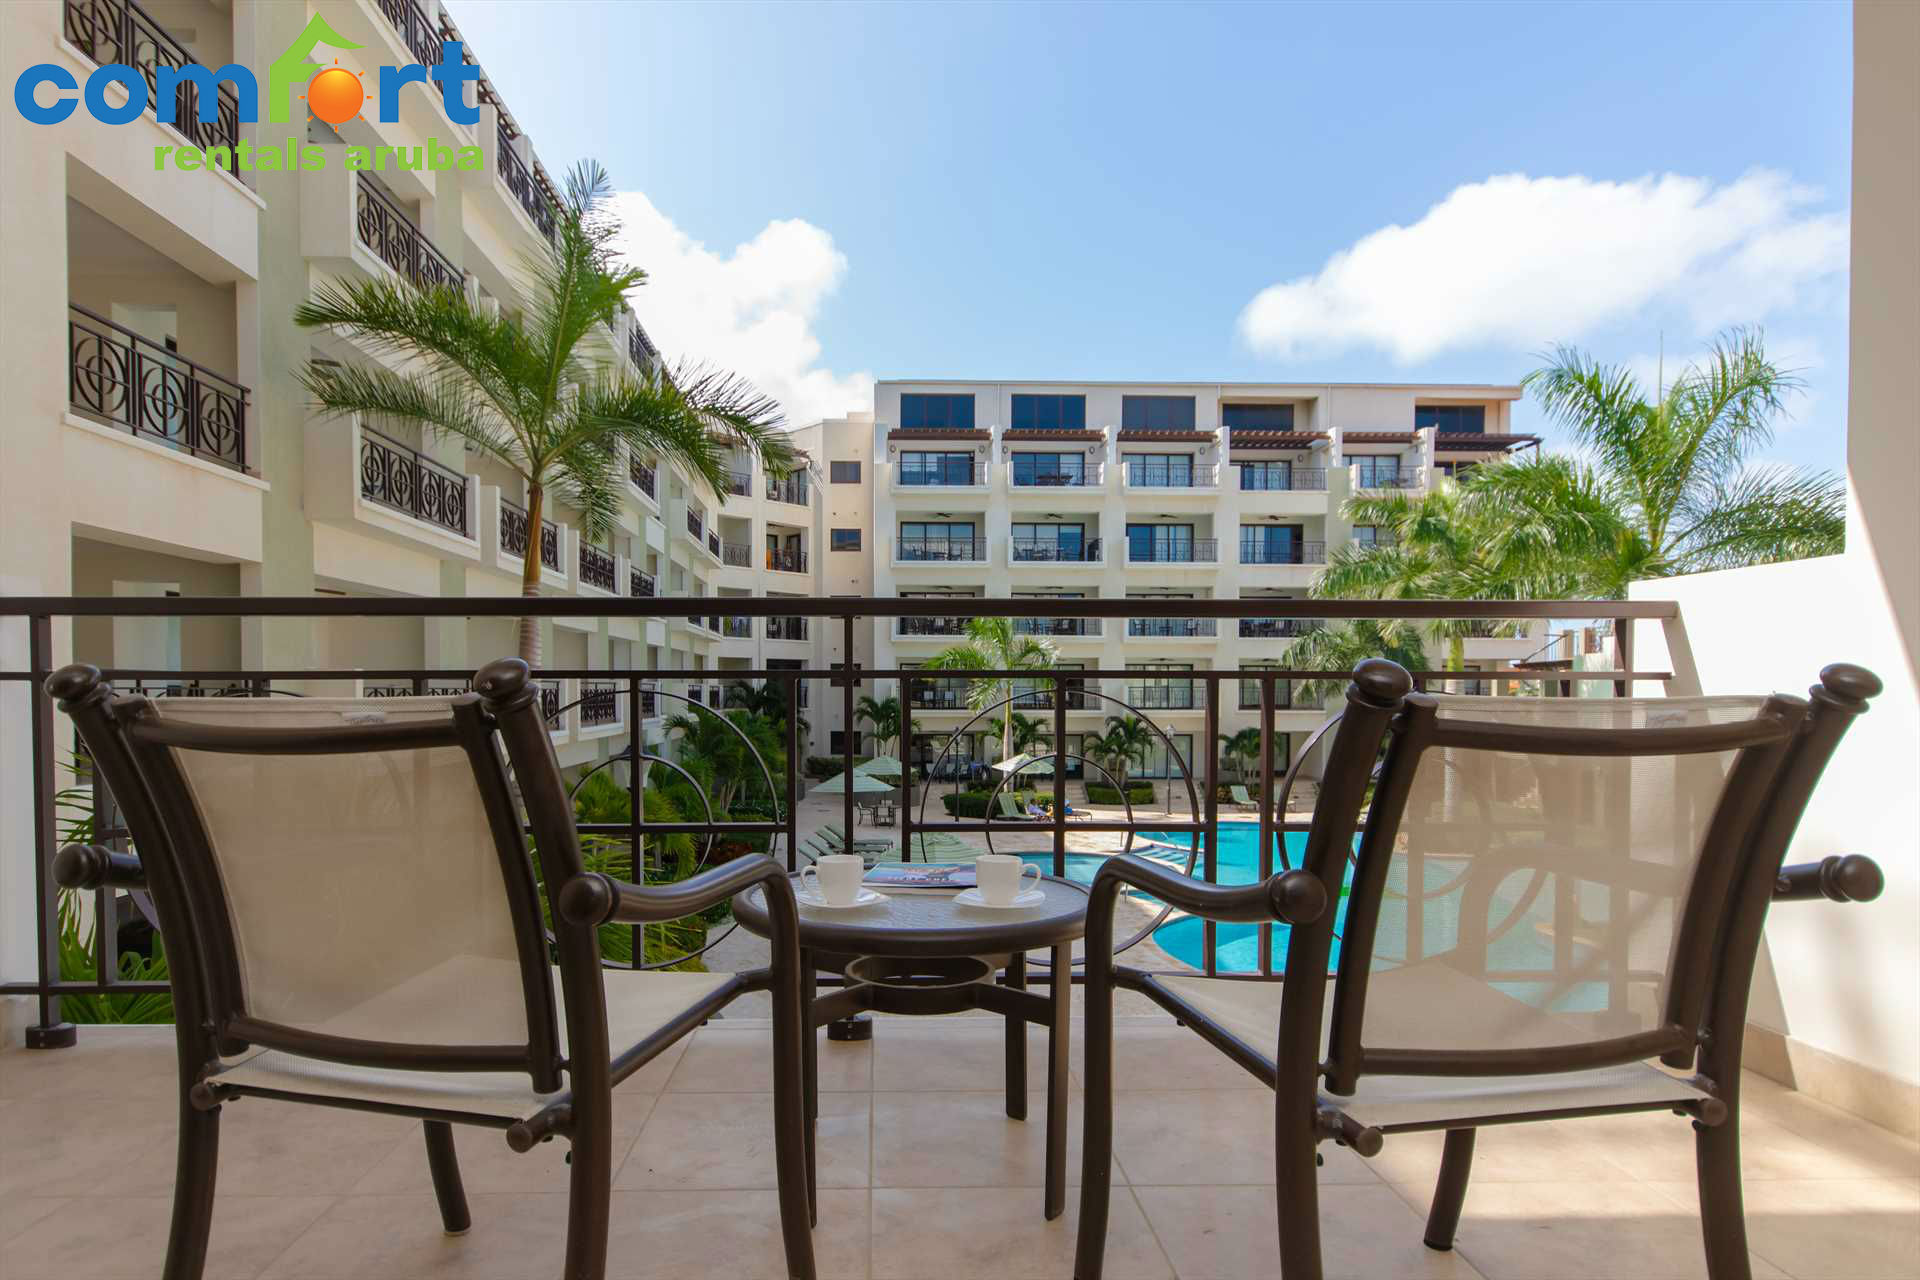 Paradise awaits at the Mazari Palm Two-bedroom condo